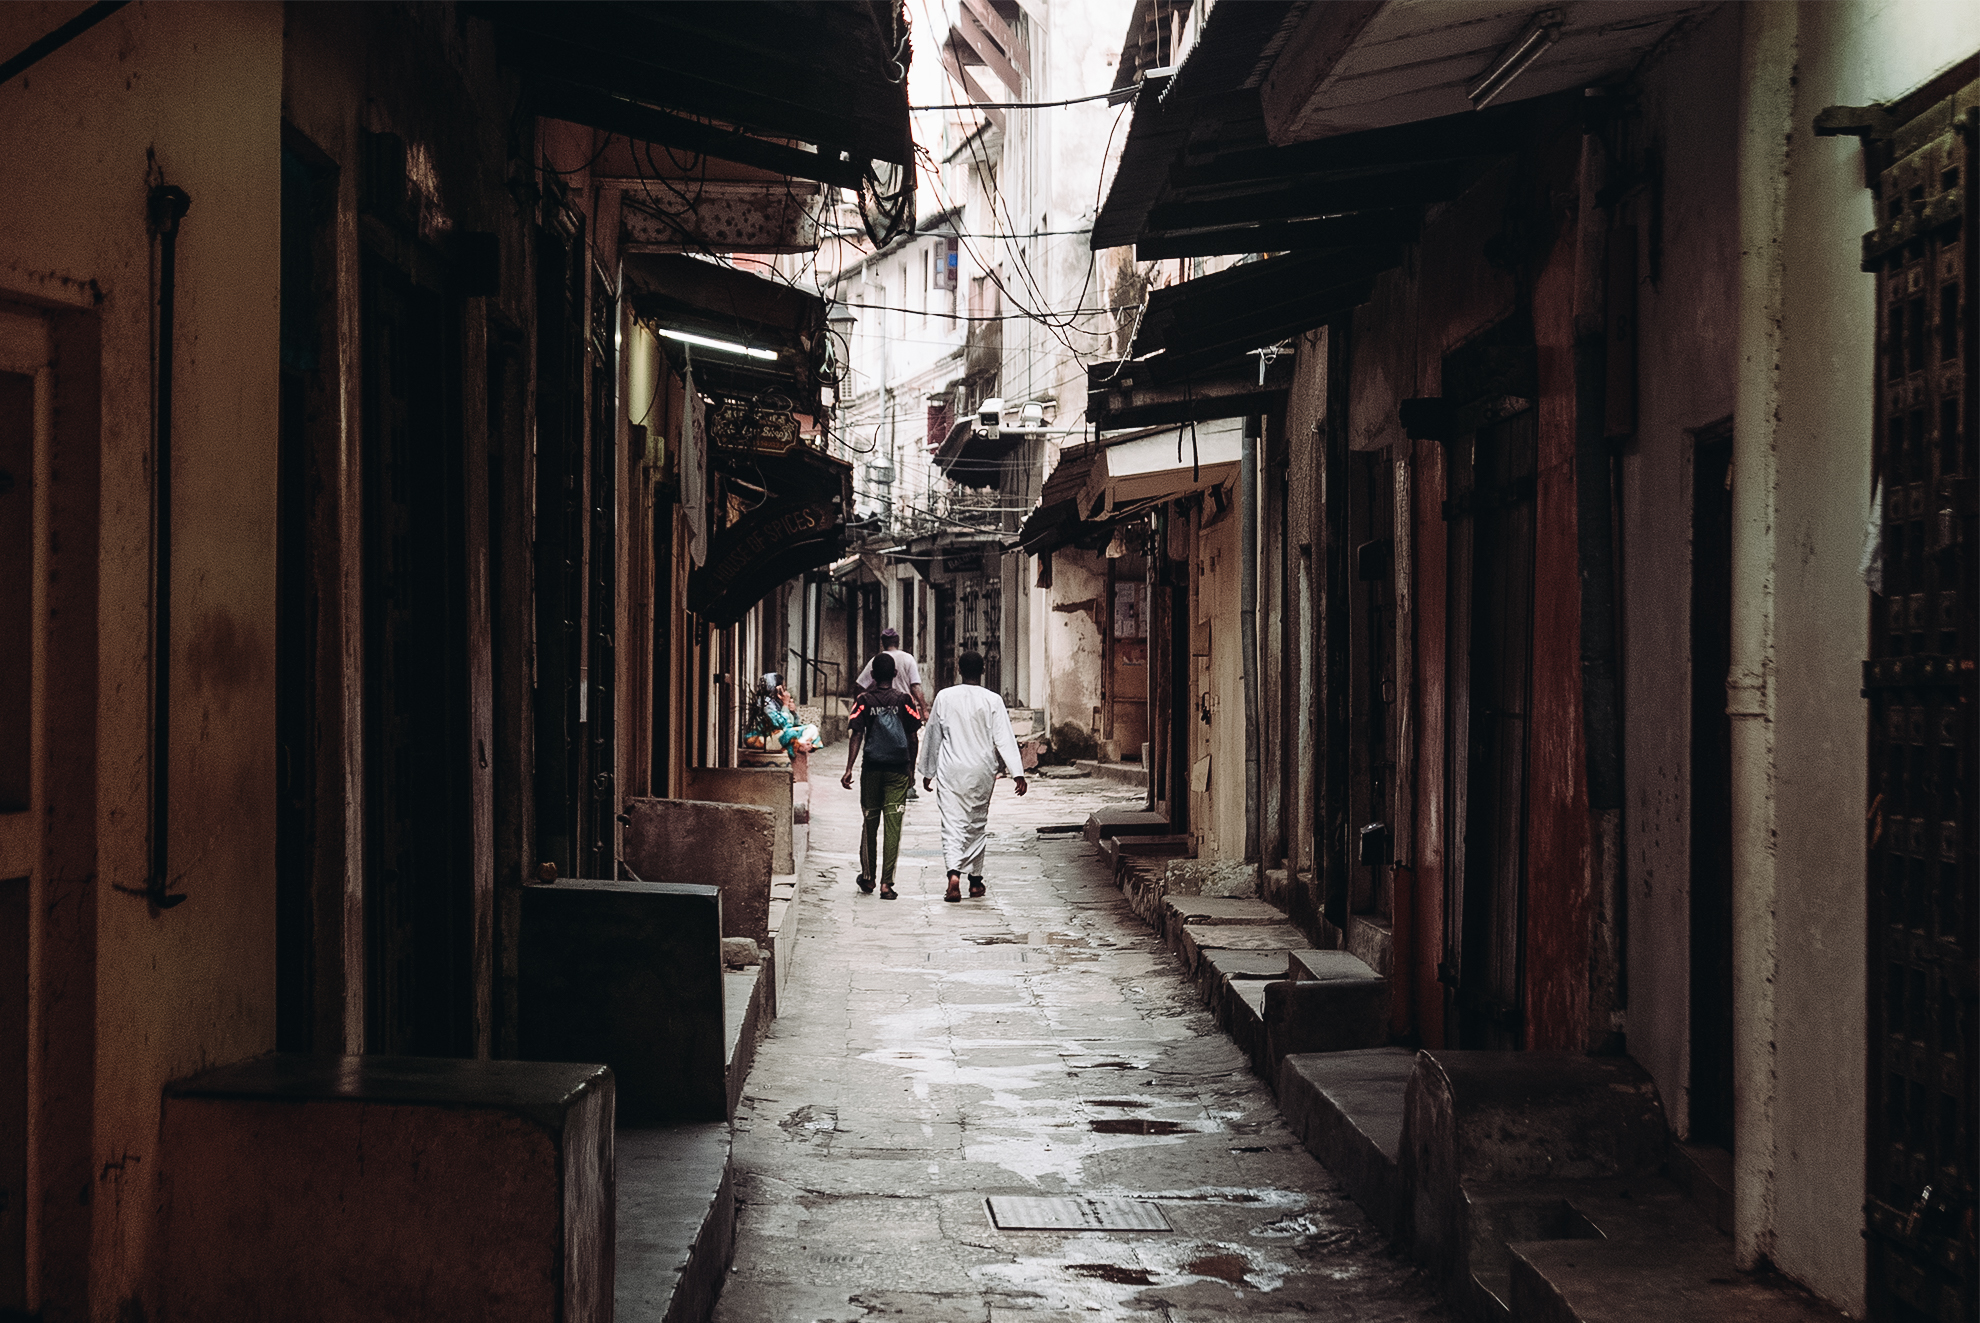 People walking down an alley, away from the camera